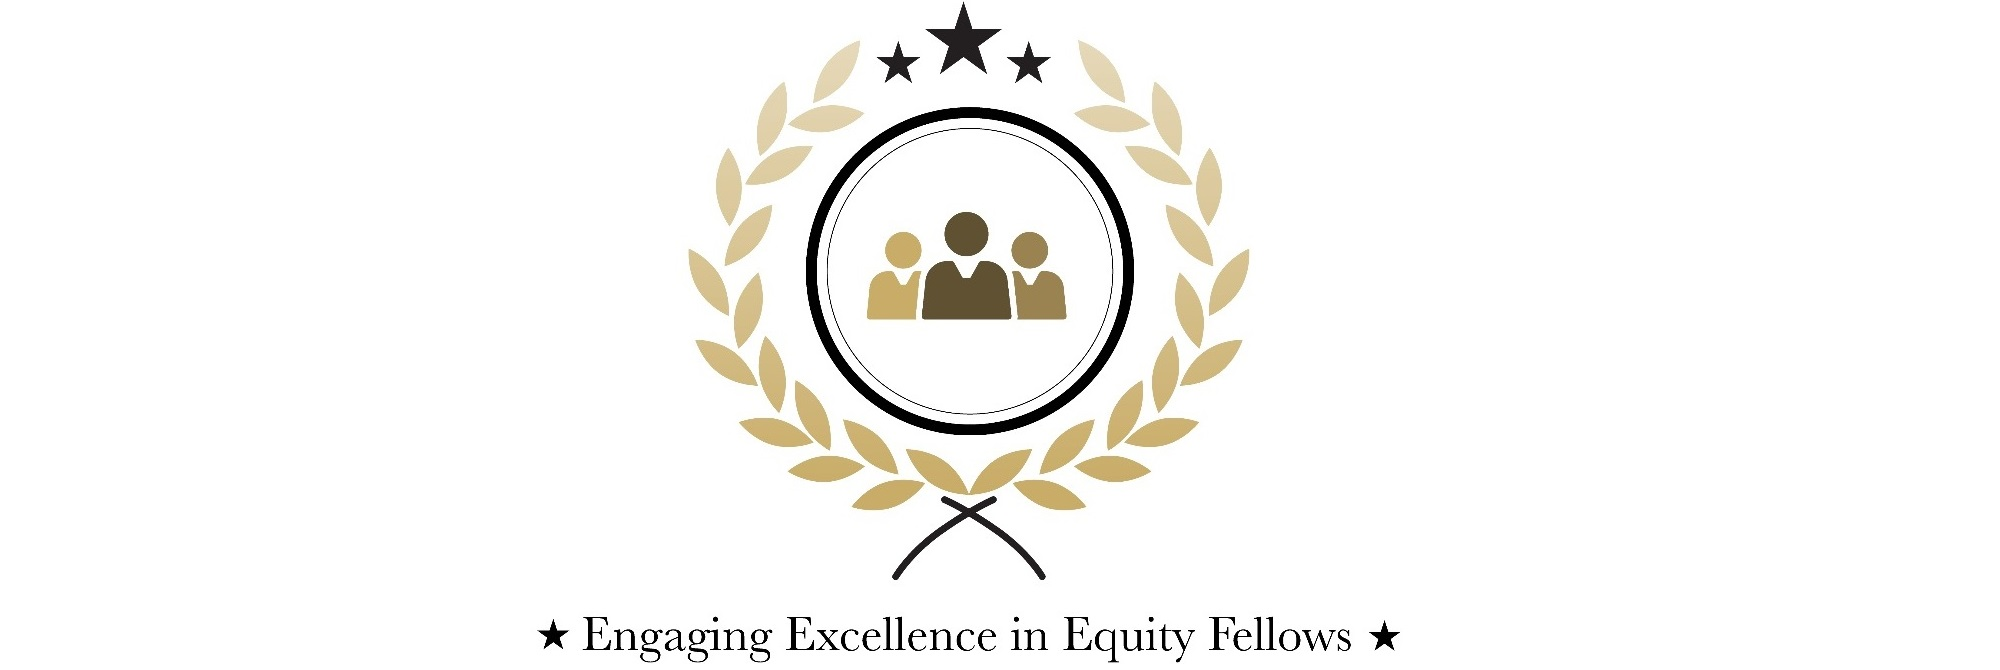 Engaging Excellence in Equity Fellows-Use